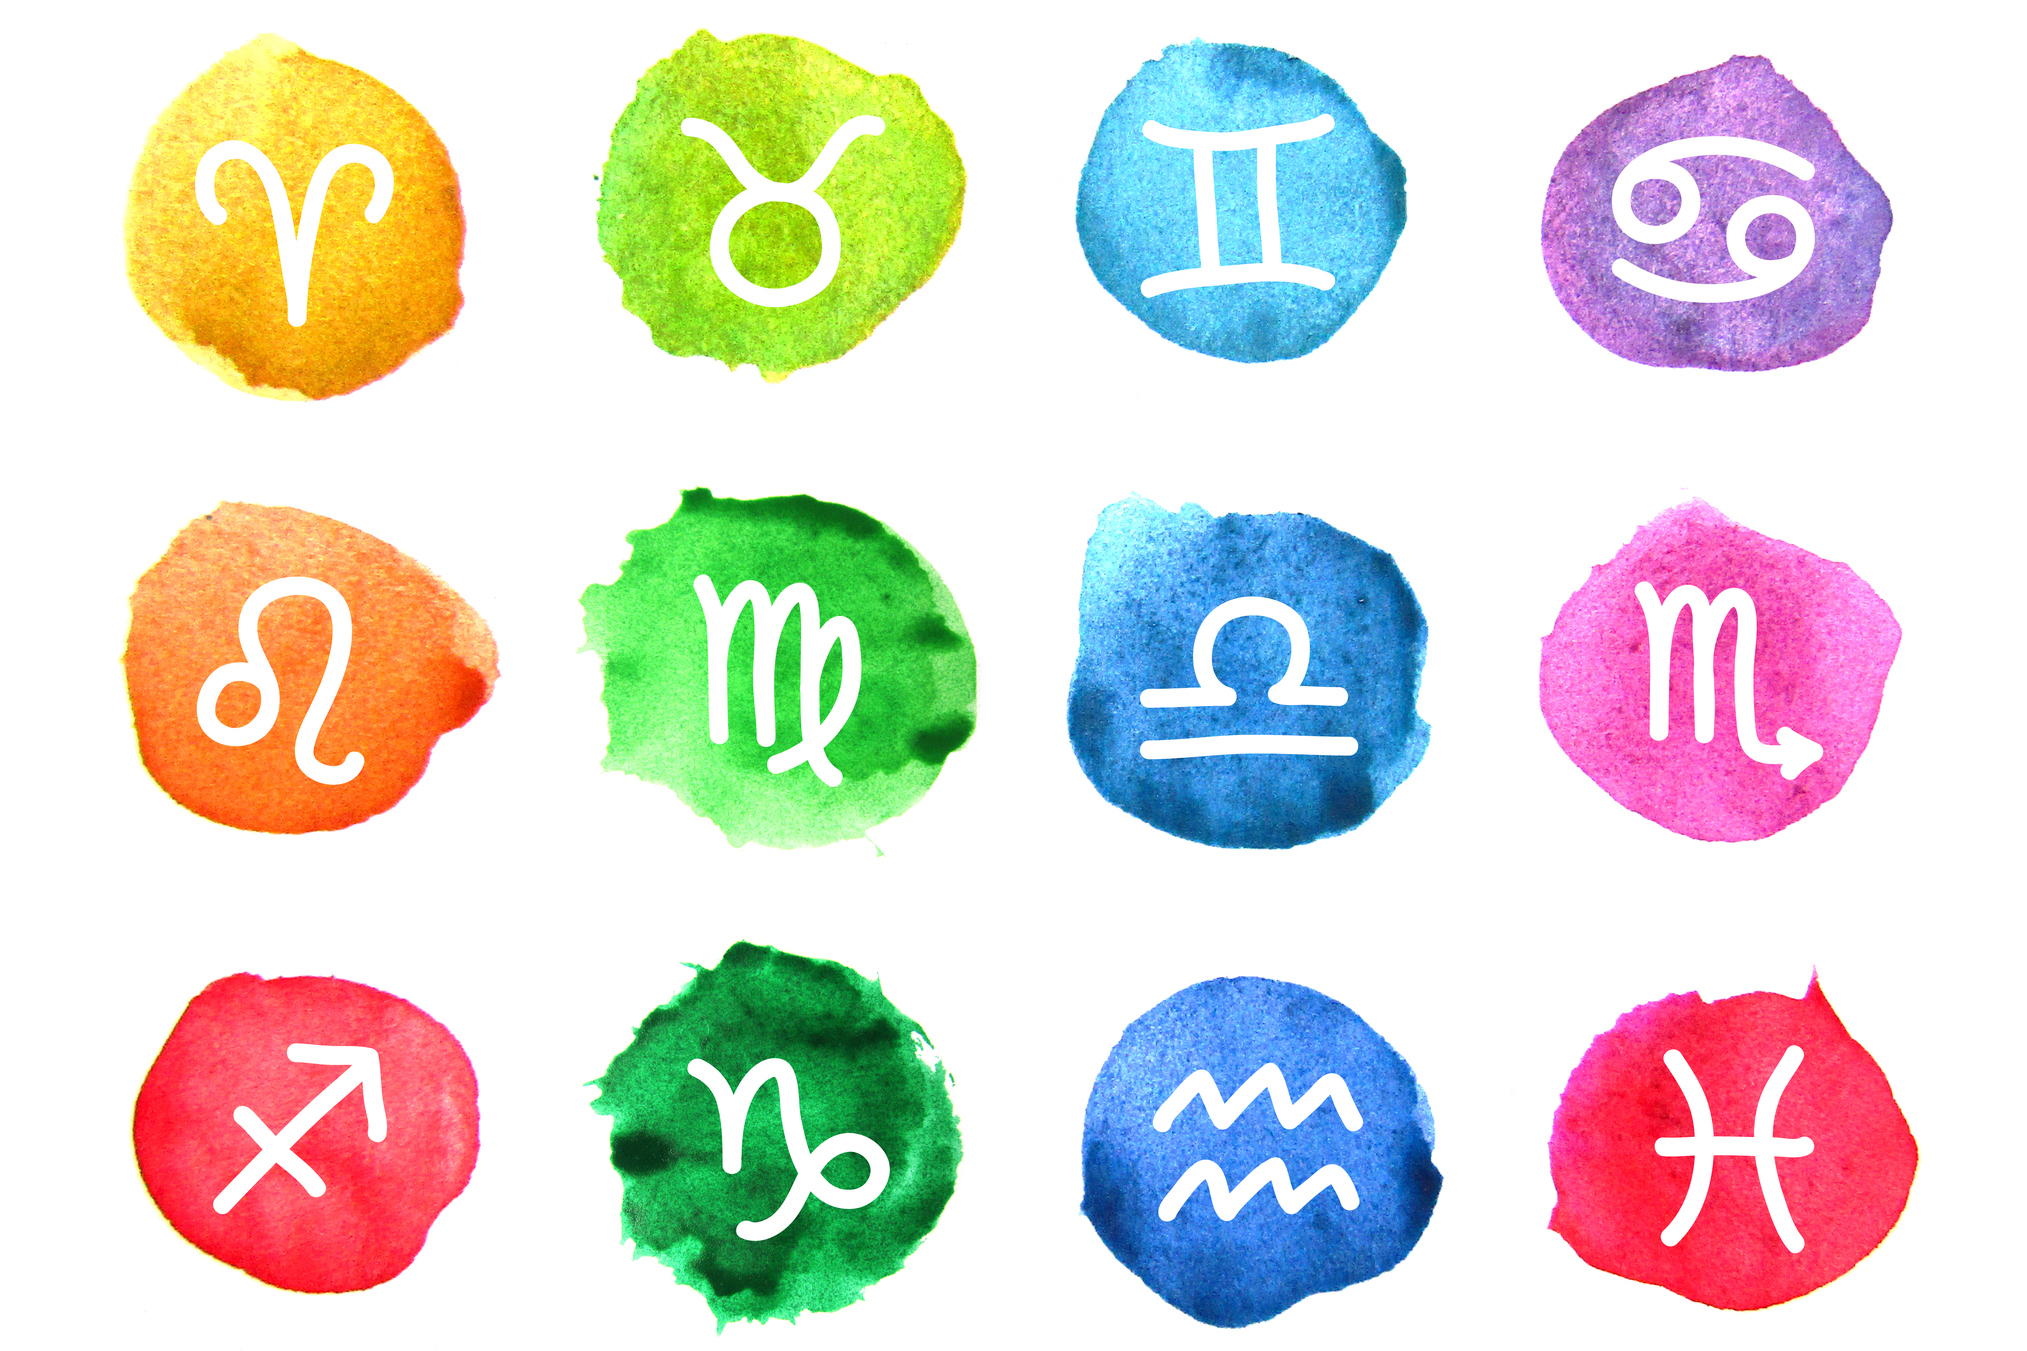 Worst Traits Of Each Zodiac Sign, Ranked From Best To Worst